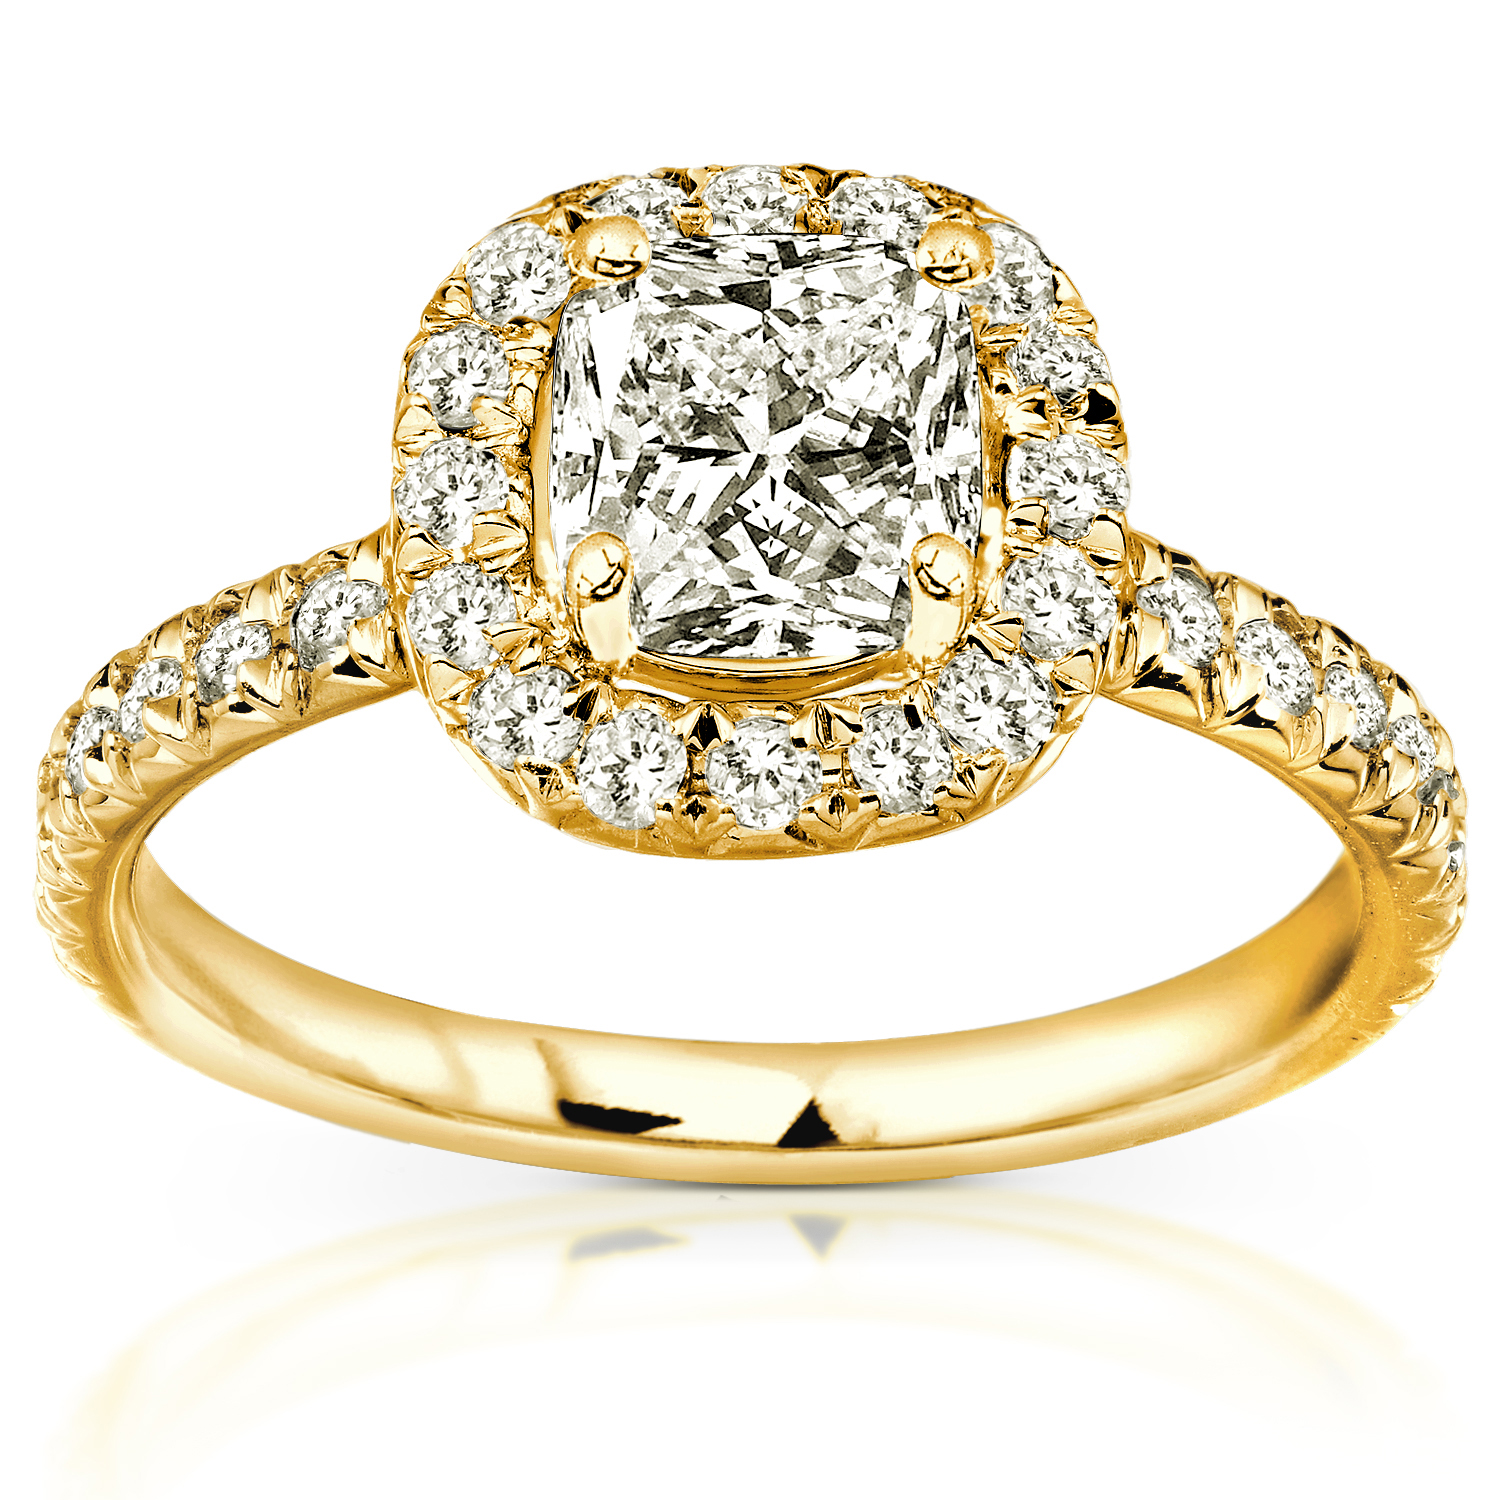 b jcpenney jewelry wedding rings Shop Engagement Rings White Gold White Gold Yellow Gold